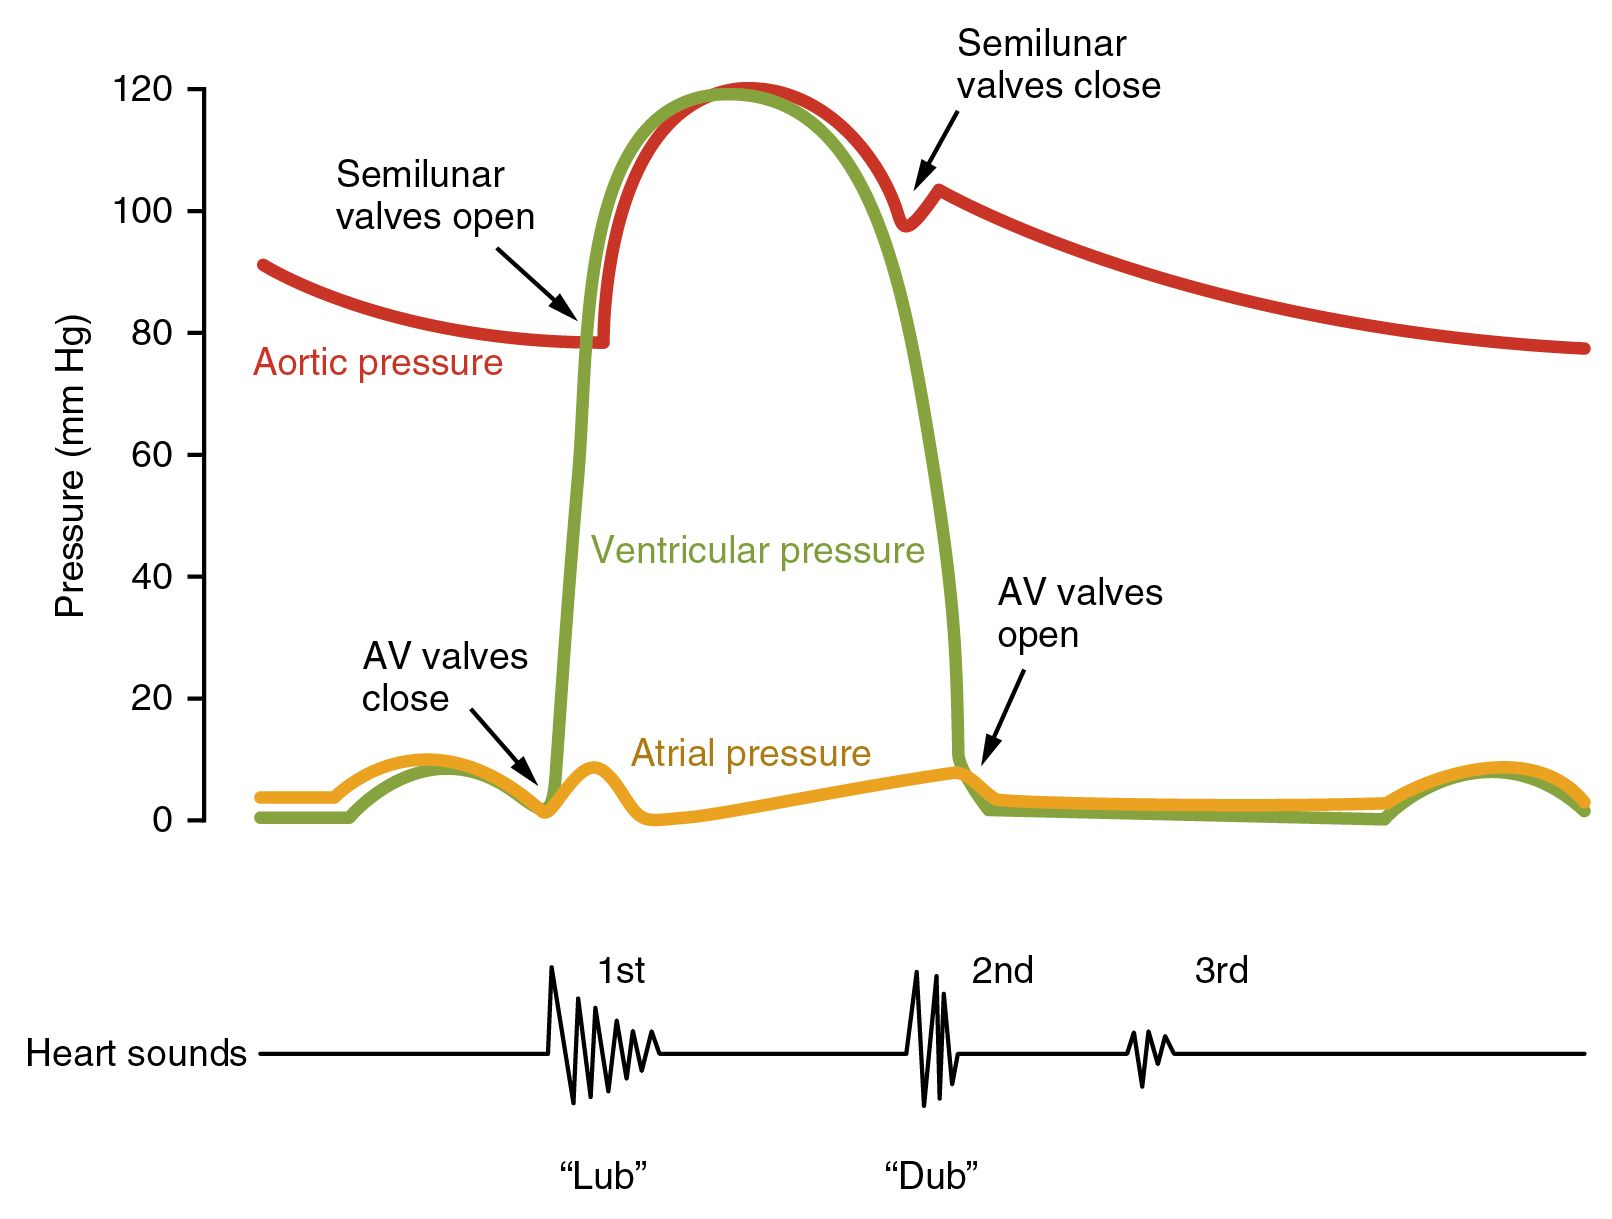 medium resolution of this image shows a graph of the blood pressure with the different stages labeled under the graph a line shows the different sounds made by the beating